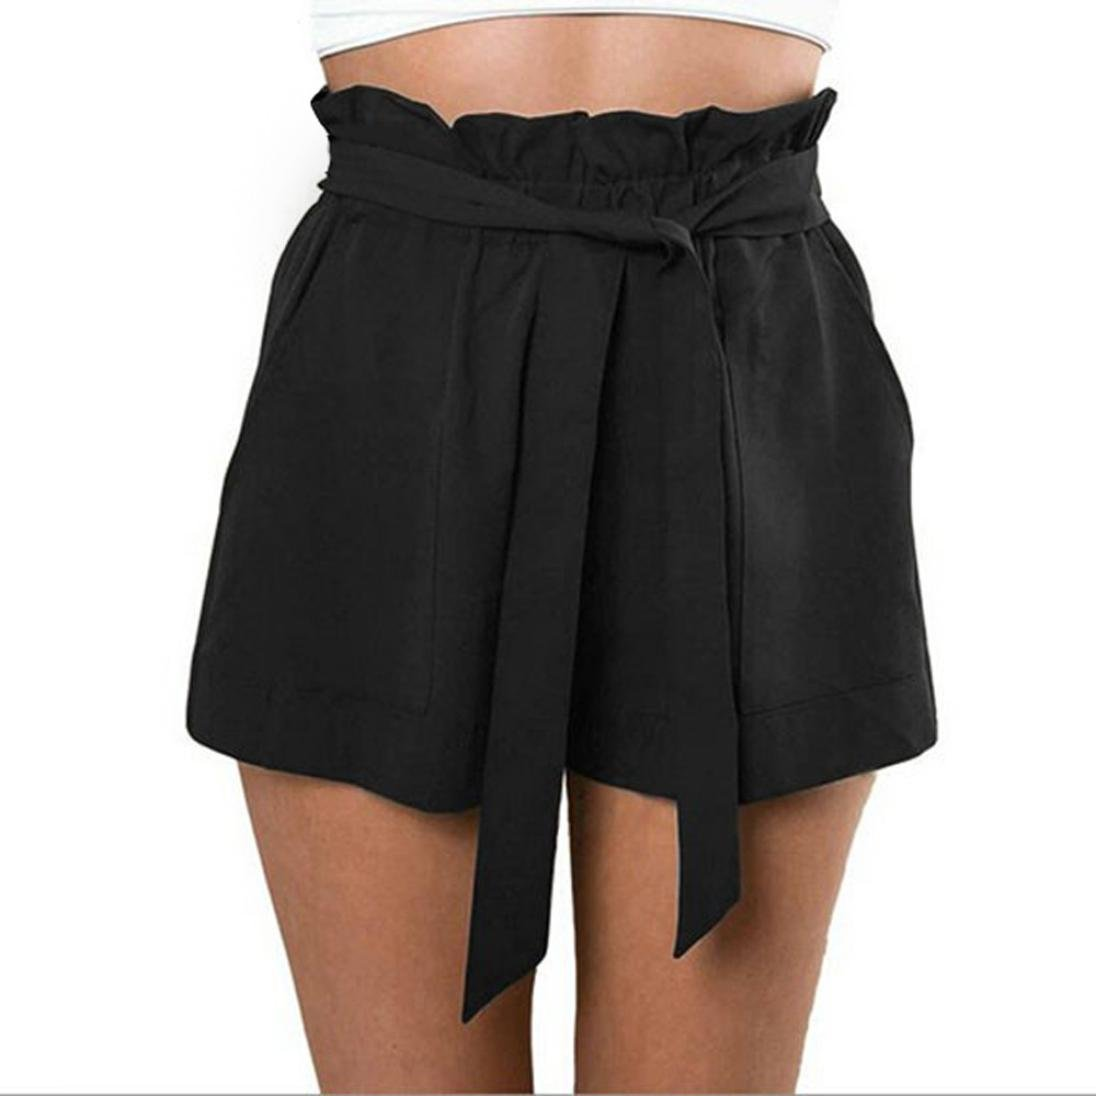 Top 10 wholesale Tribal Shorts Womens - Chinabrands.com f45054f57287